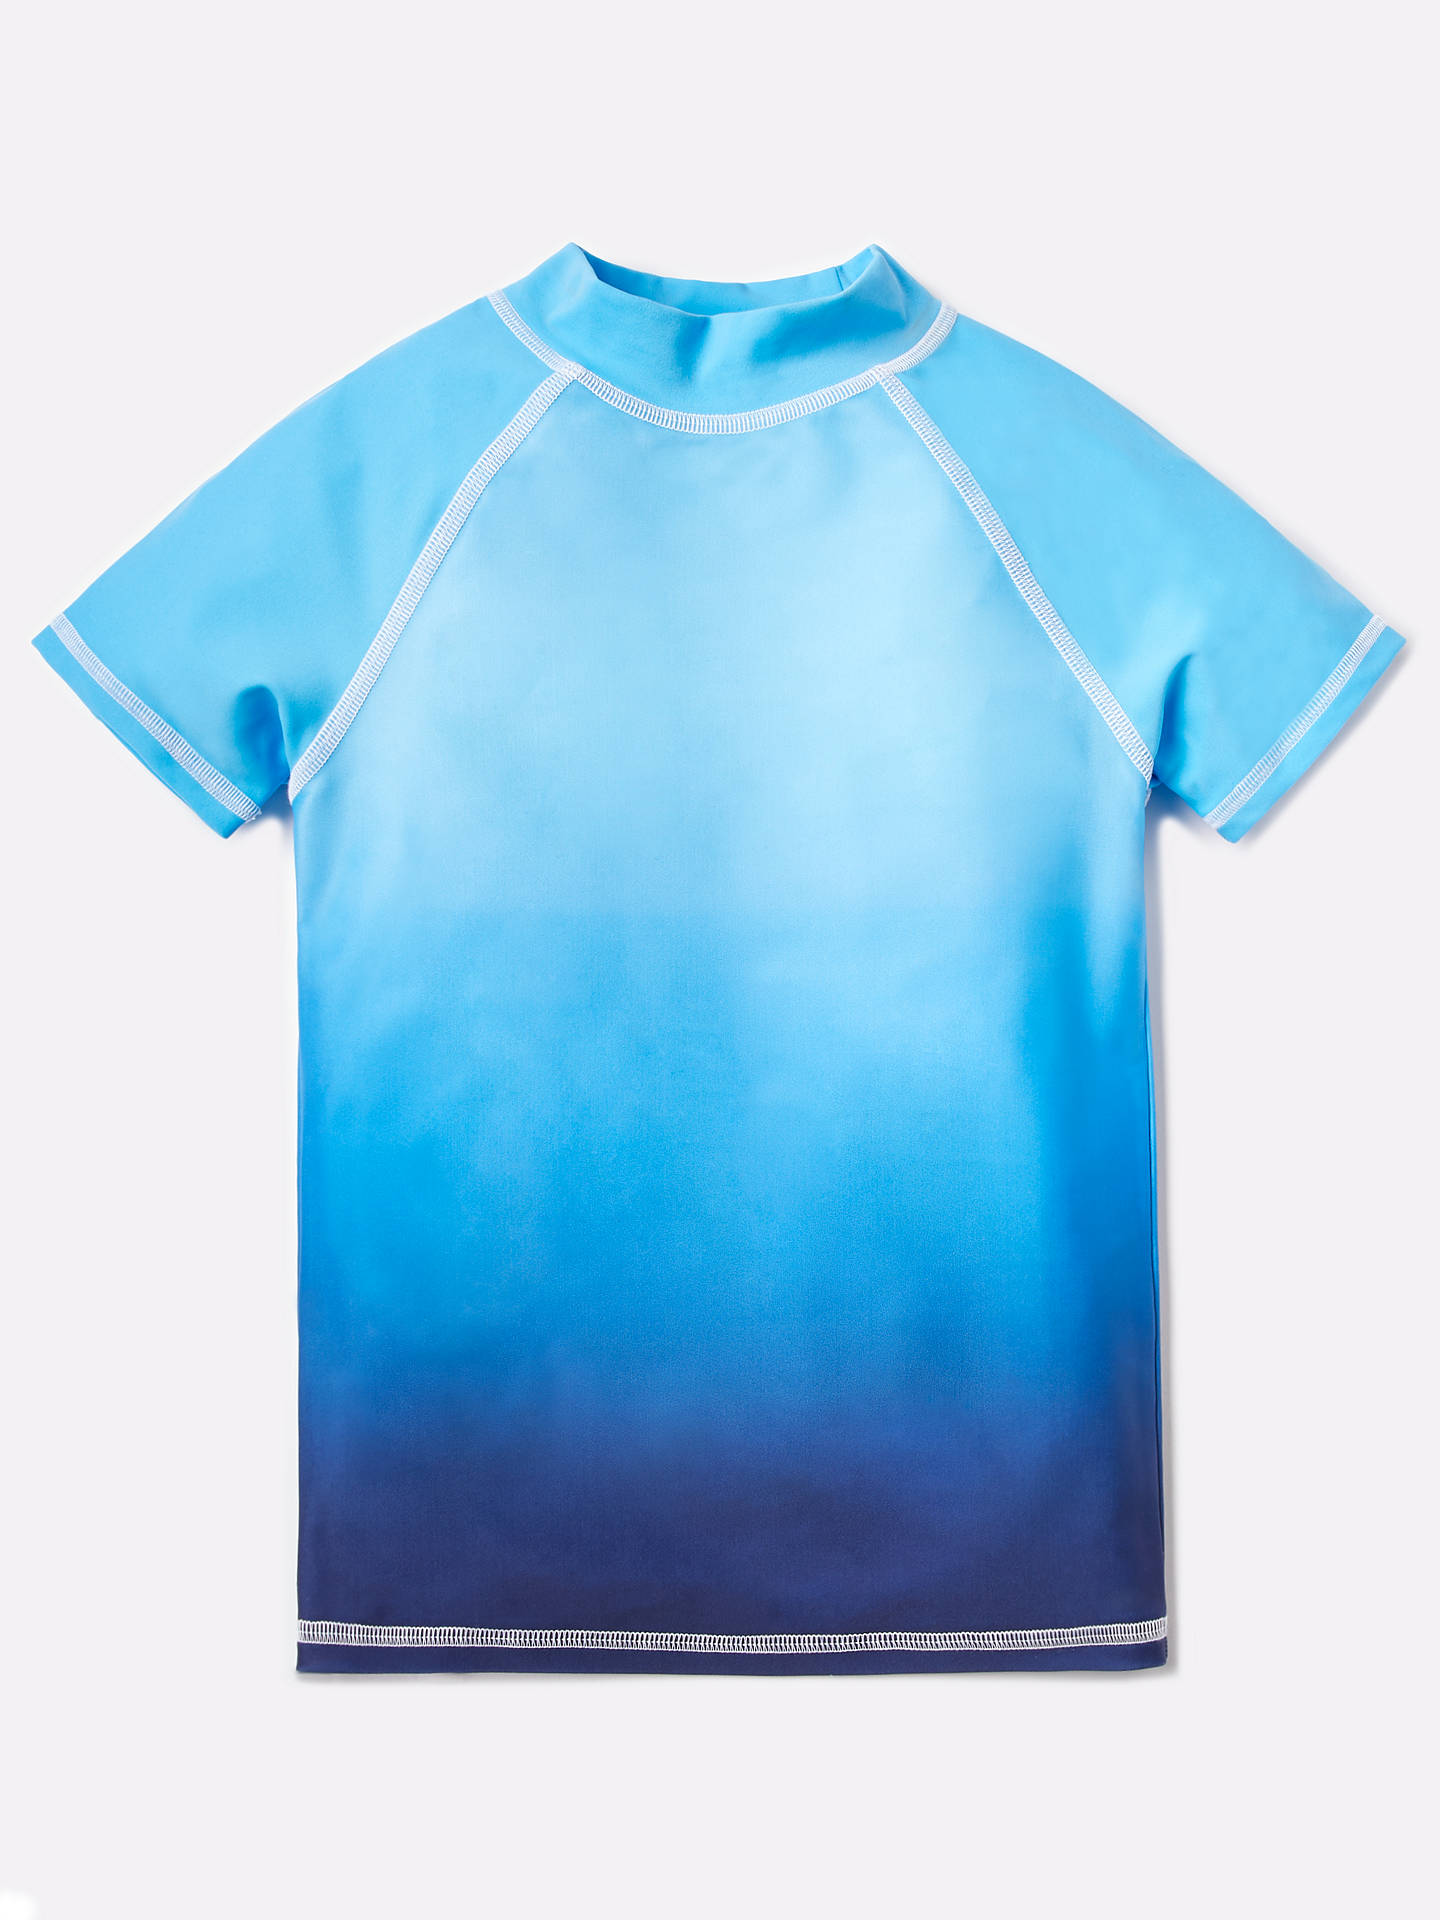 Buy John Lewis & Partners Boys' Ombre Rashie Vest, Blue, 11 years Online at johnlewis.com